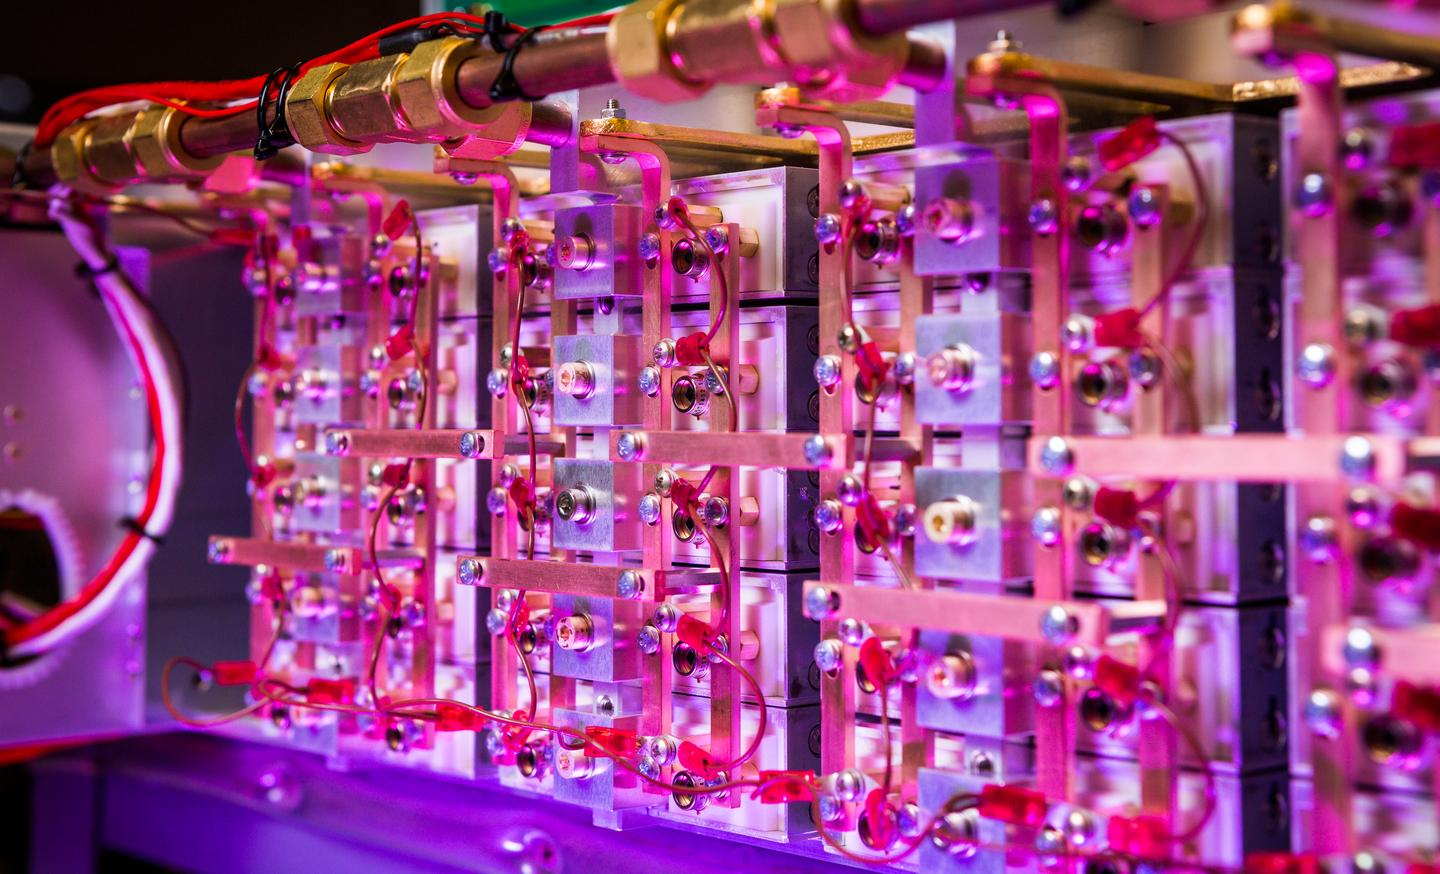 The LLNL laser diode arrays are the most powerful of their type ever built, producing an incredible 3.2 million watts of laser power (Photo: Damien Jemison/LLNL)